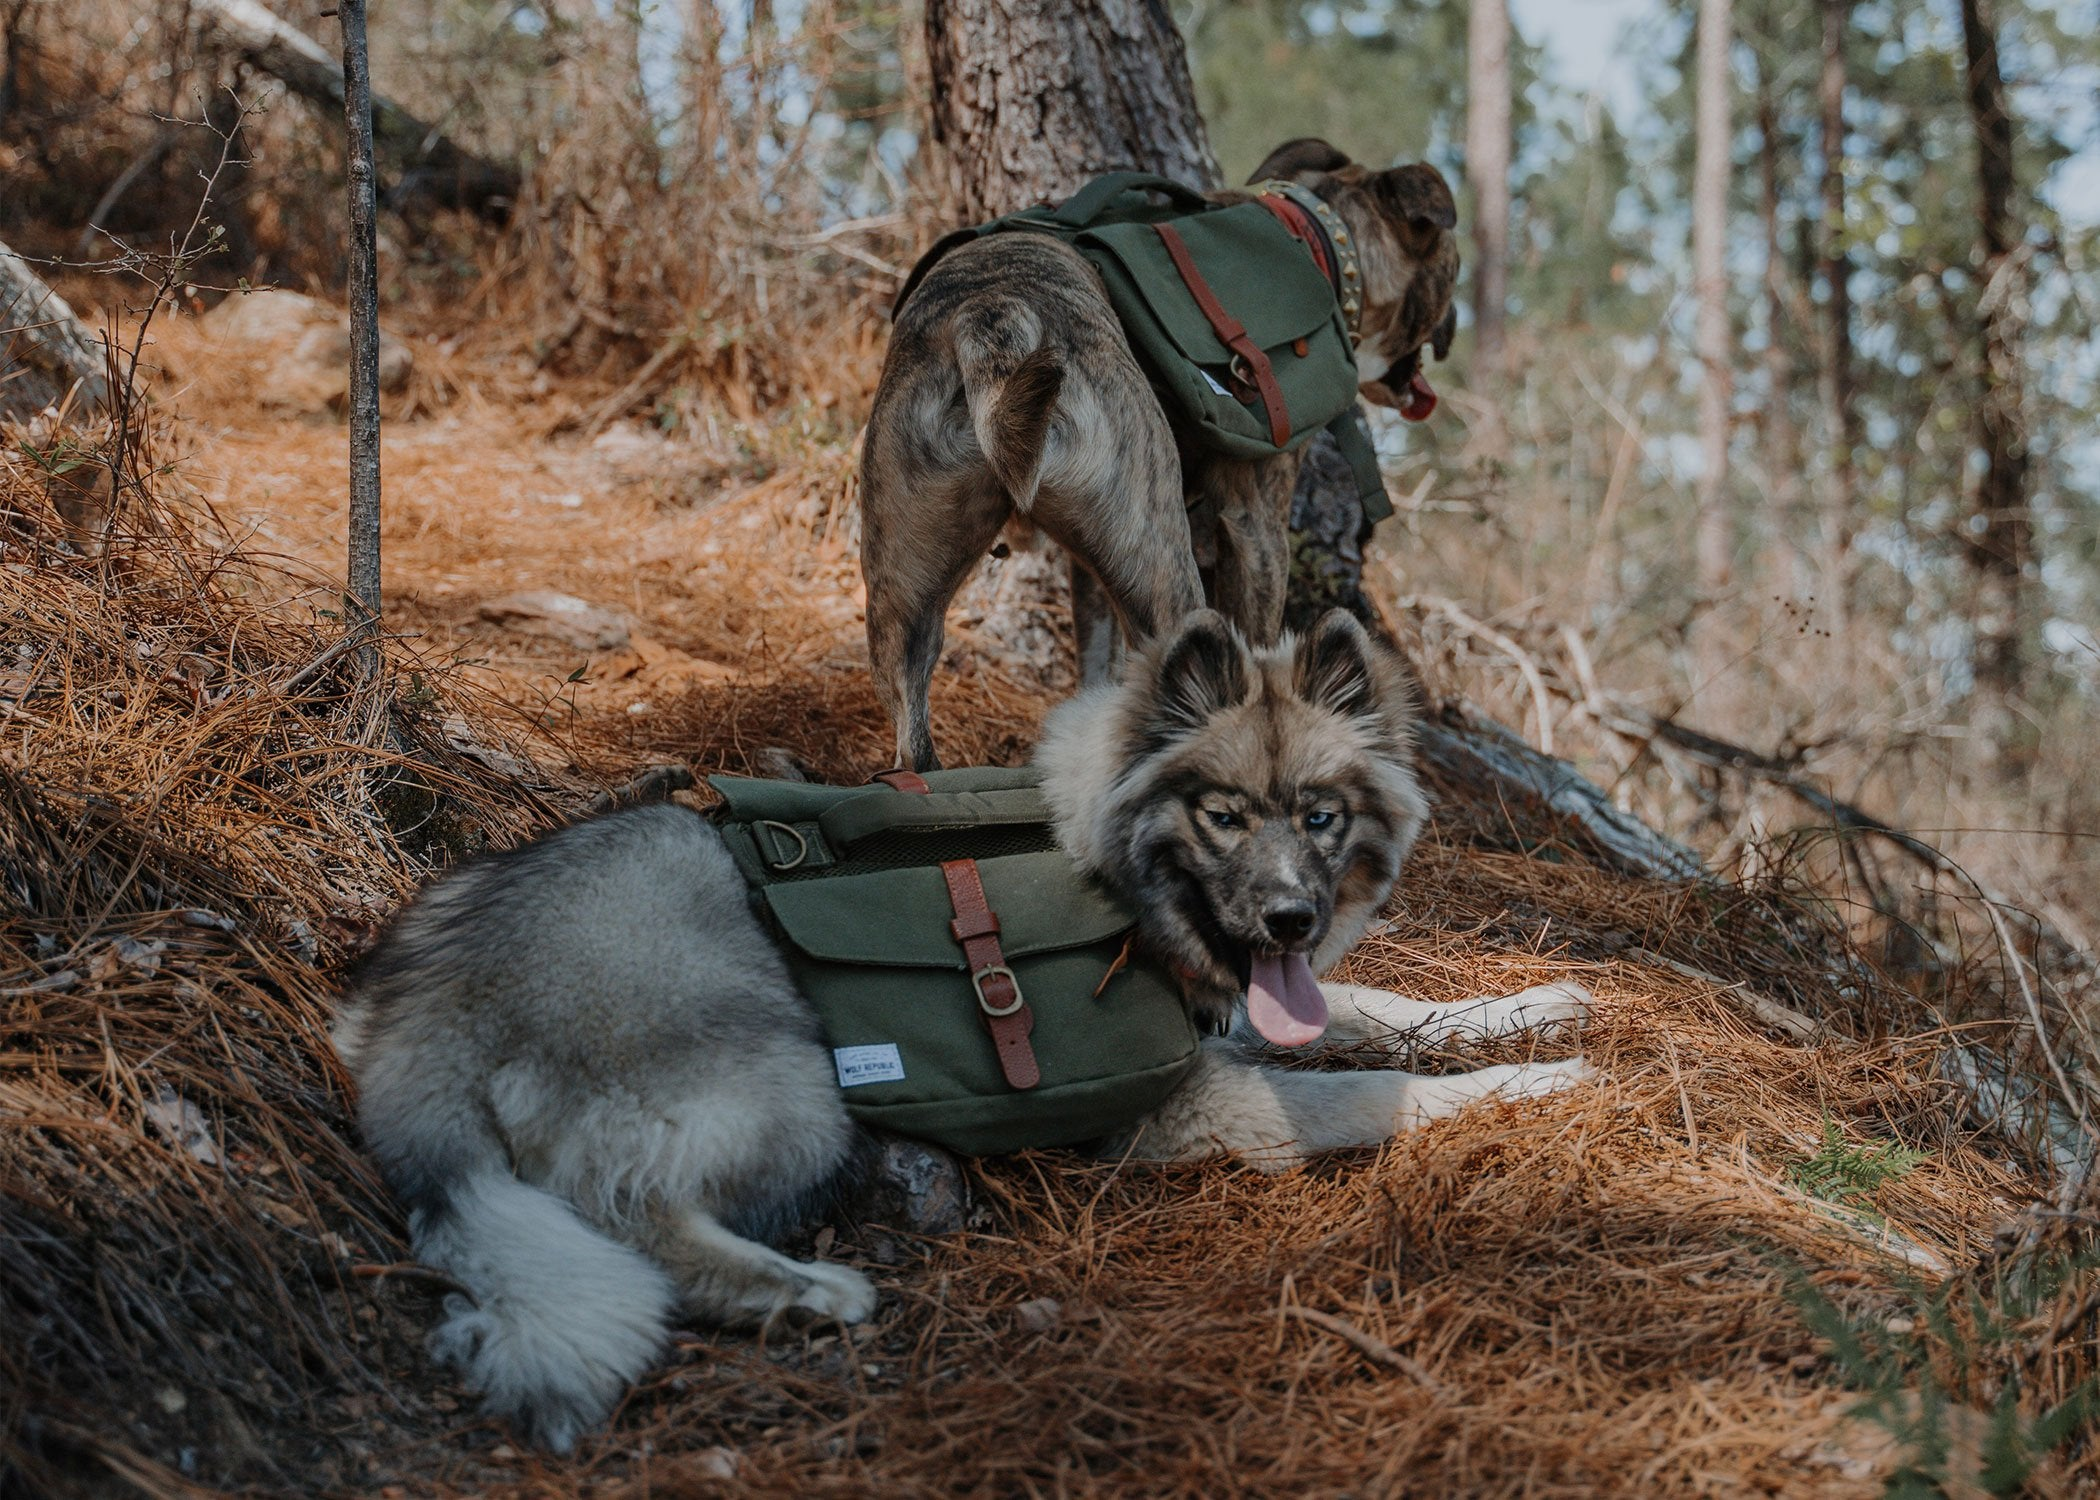 dogs hiking with dog backpacks in the forrest